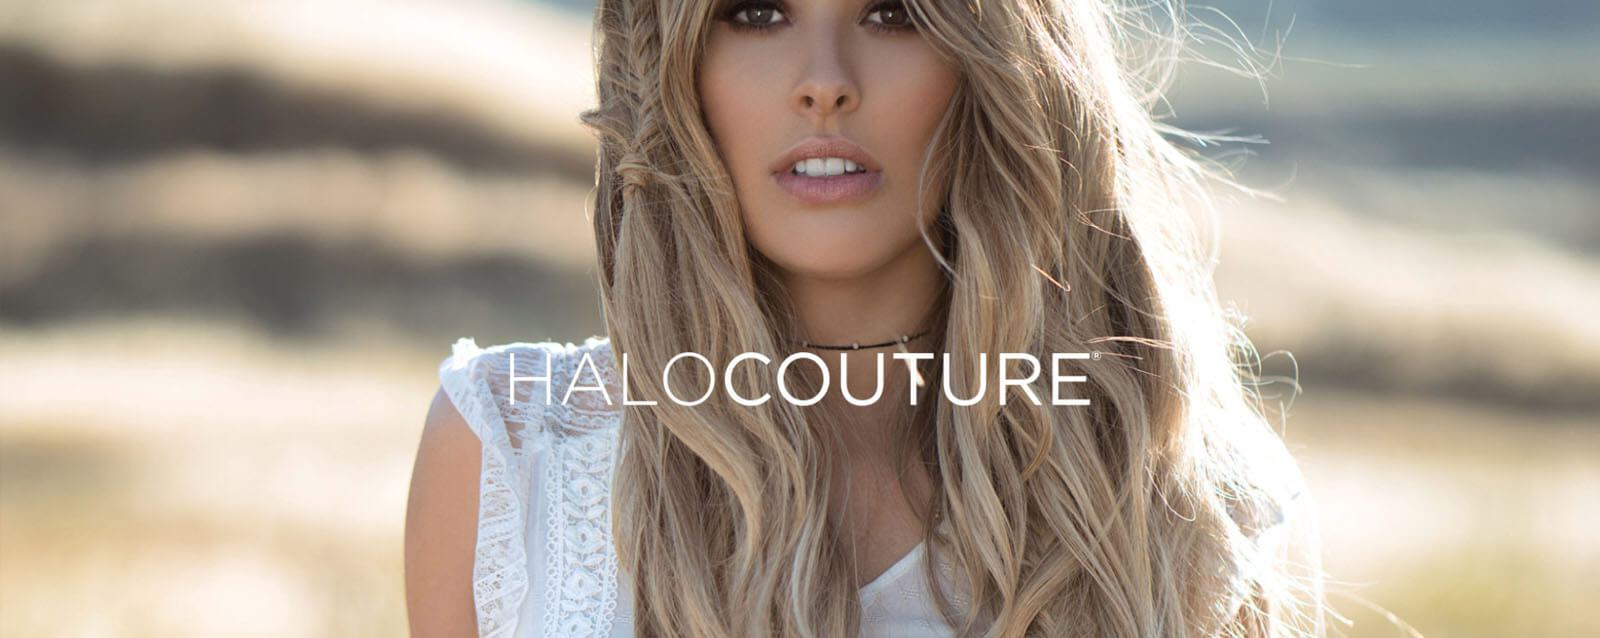 HALOCOUTURE-Extensions.jpg